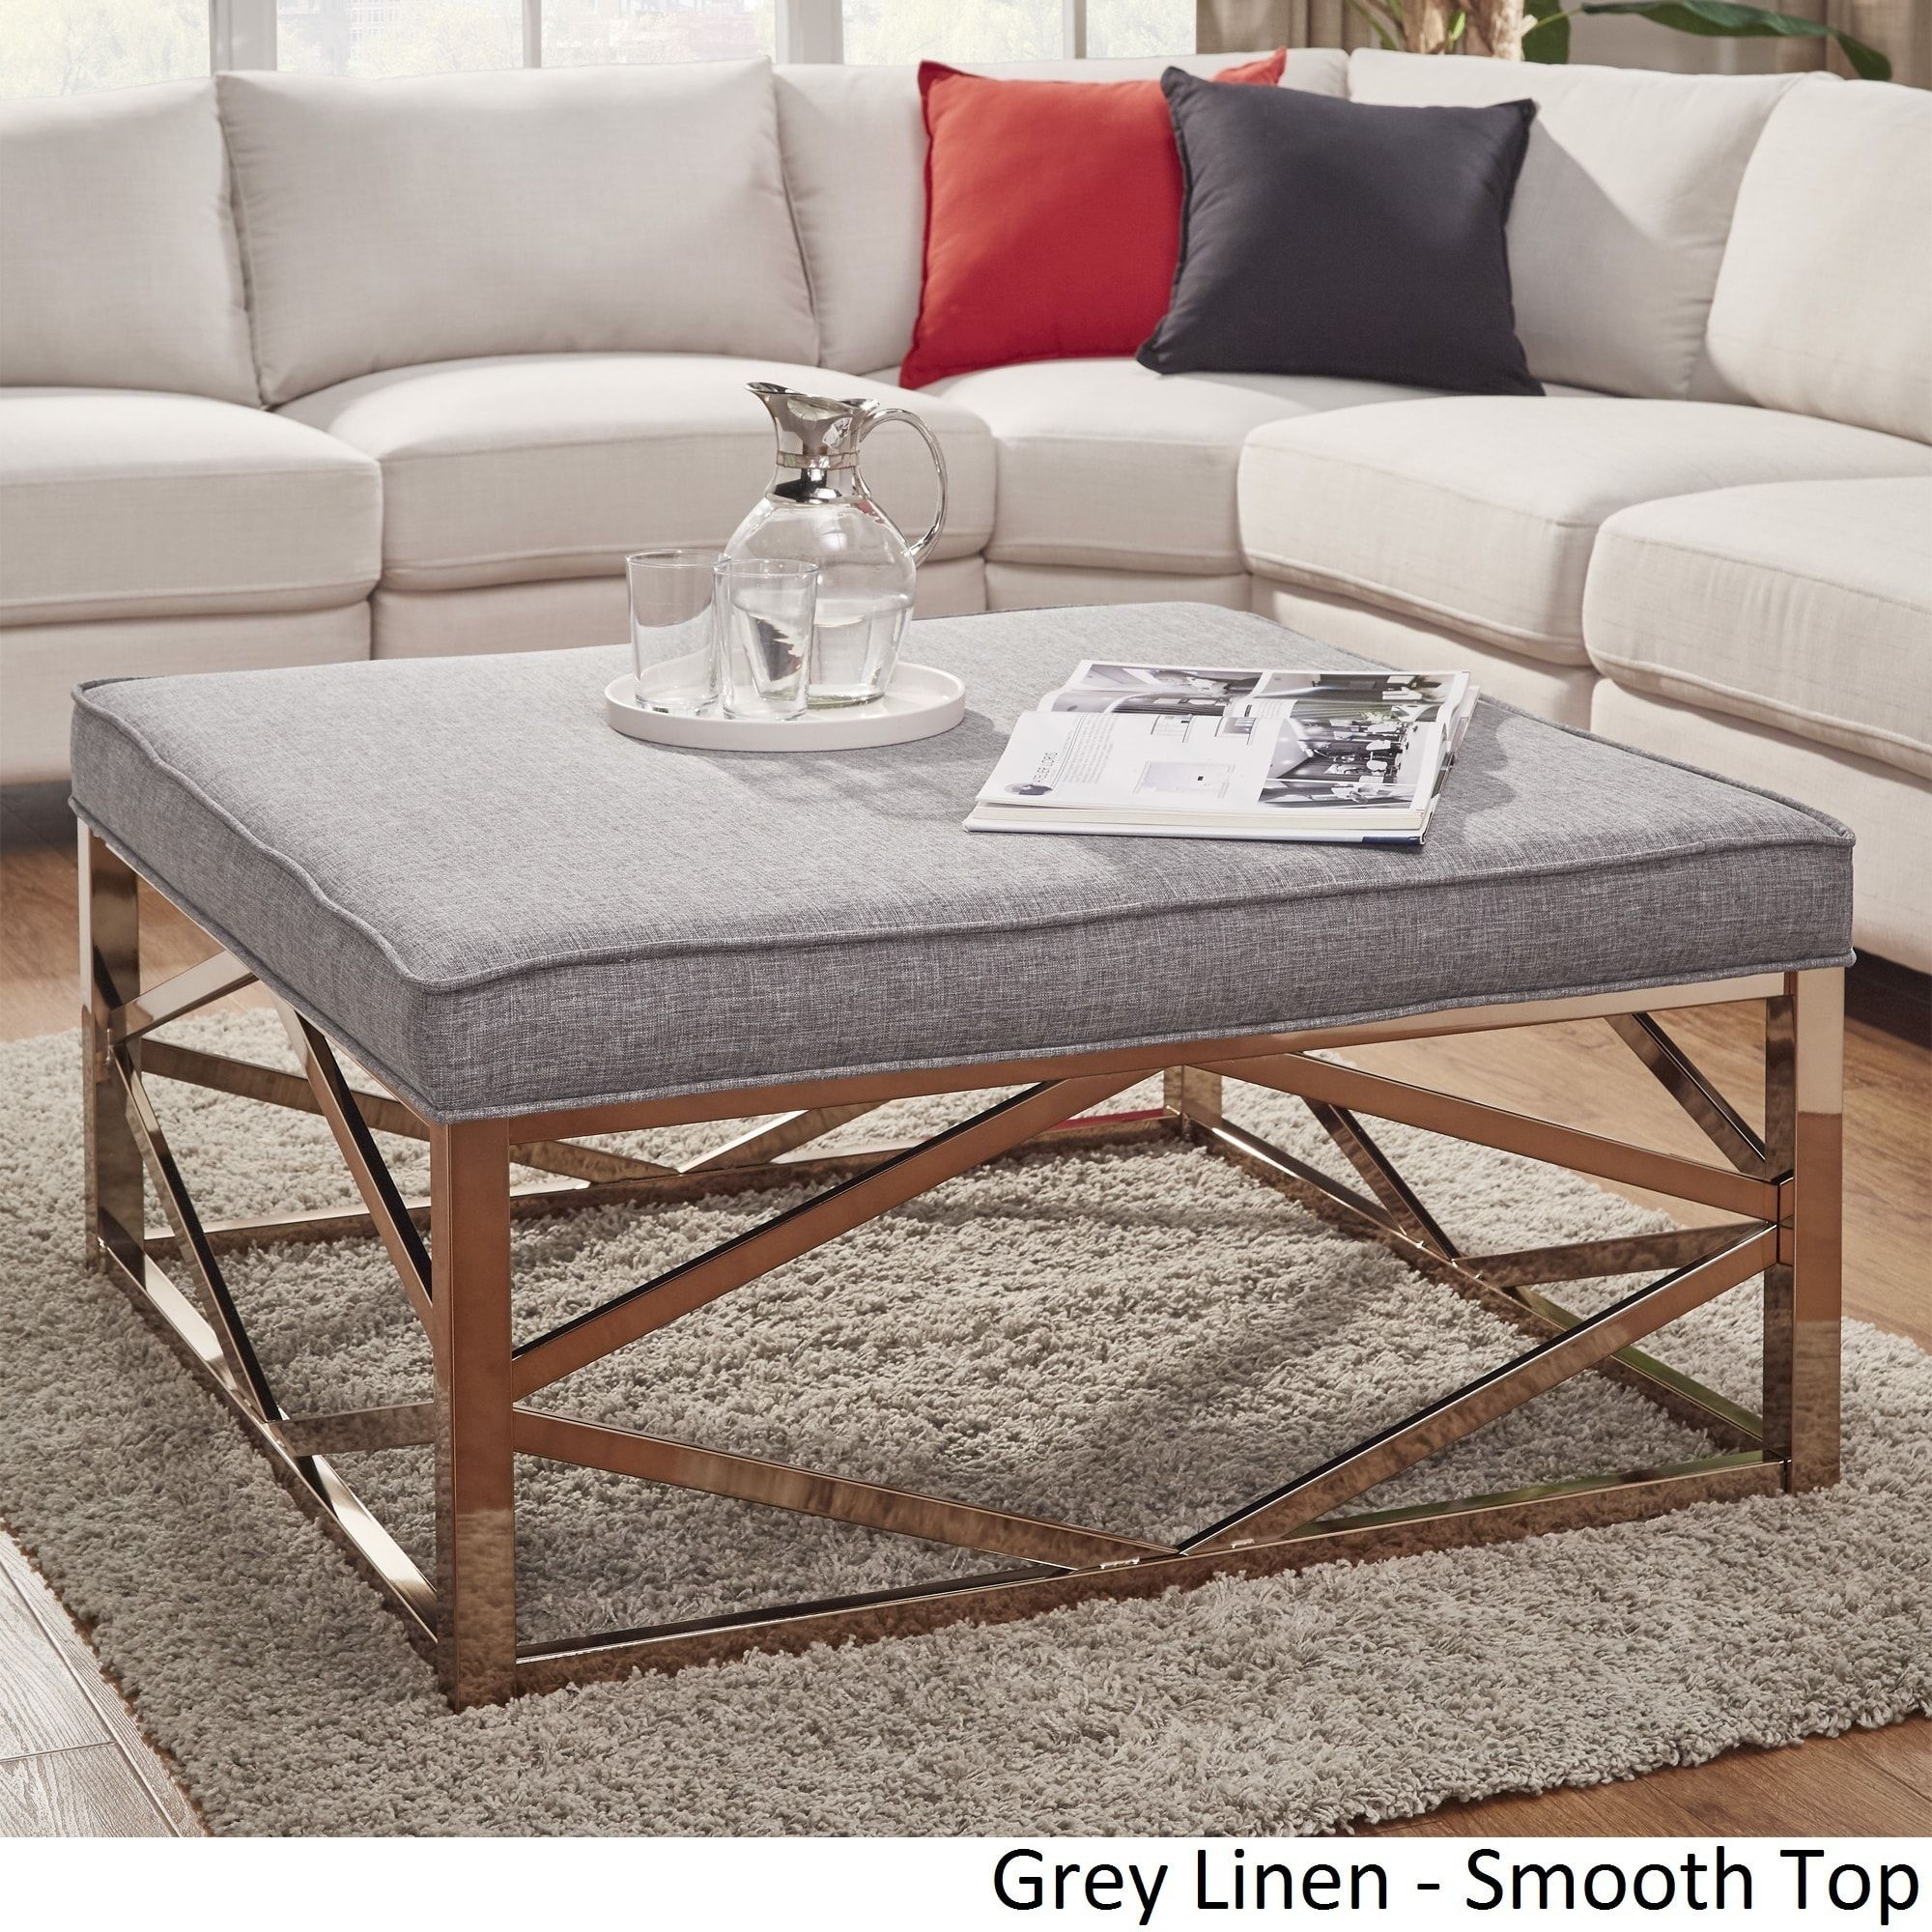 Solene Geometric Base Square Ottoman Coffee Table - Champagne Gold by  iNSPIRE Q Bold ([Beige Linen]- Smooth Top), Size Medium (Fabric)